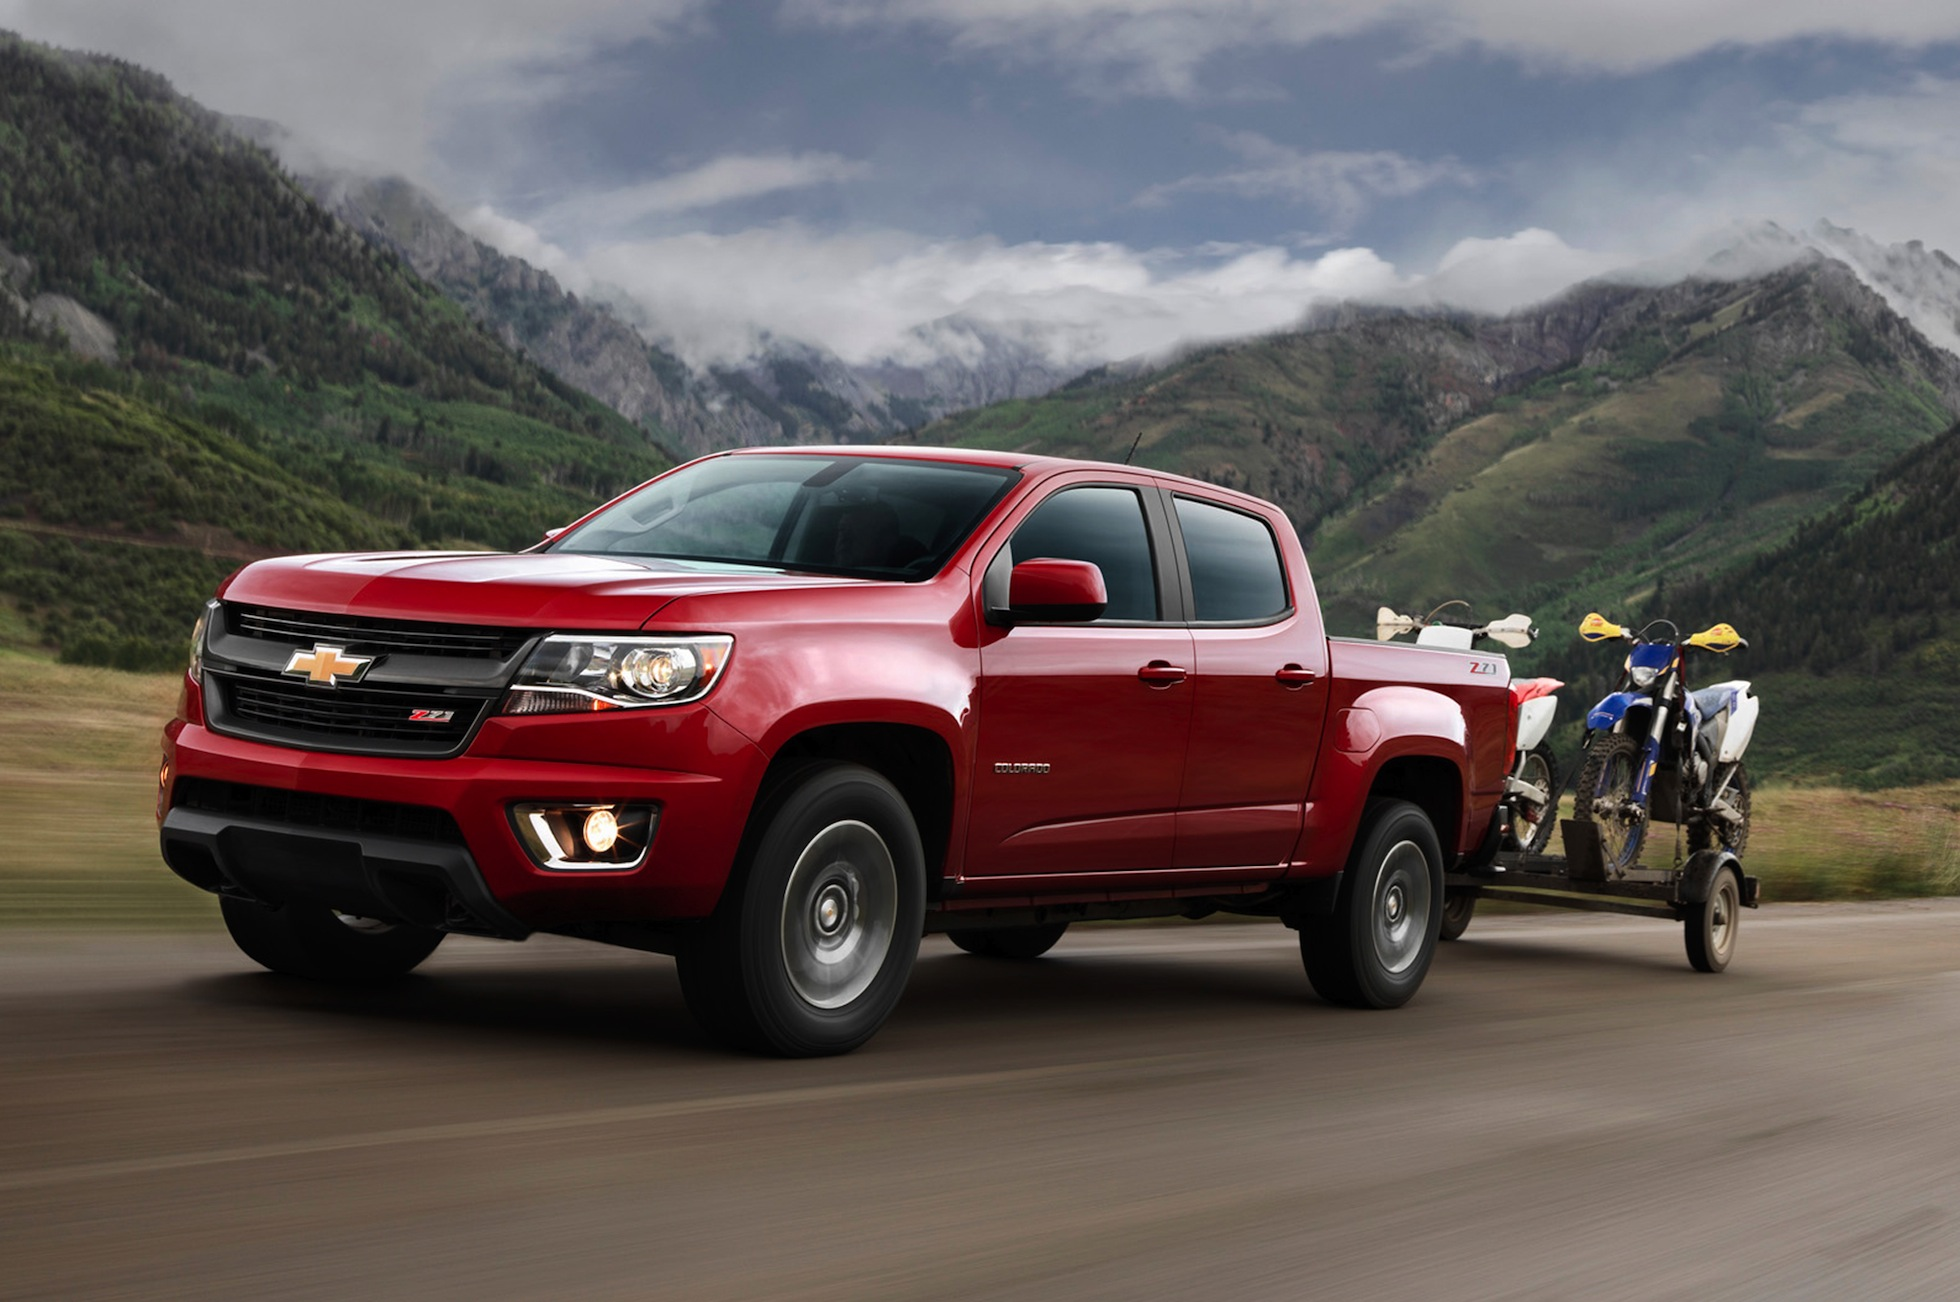 hight resolution of 2015 chevy colorado towing z71 specs rating